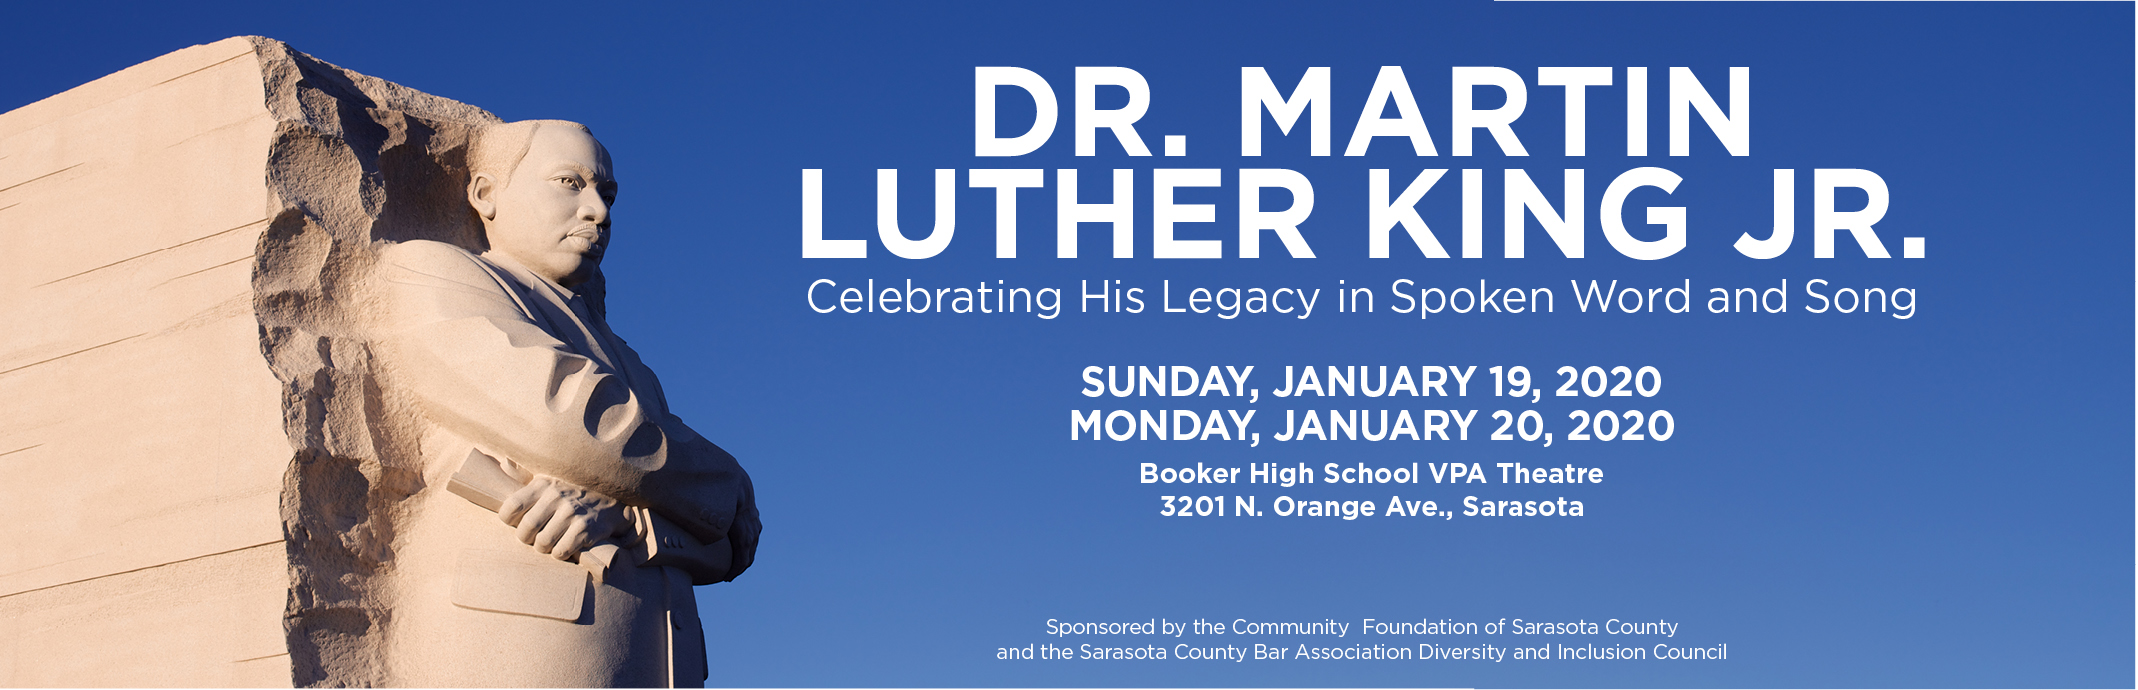 Dr. Martin Luther King Jr. Celebrating His Legacy in Spoken Word and Song, Sunday, January 19, 2020; Monday, January 20, 2020; Booker High School VPA Theatre; 3201 N. Orange Ave., Sarasota